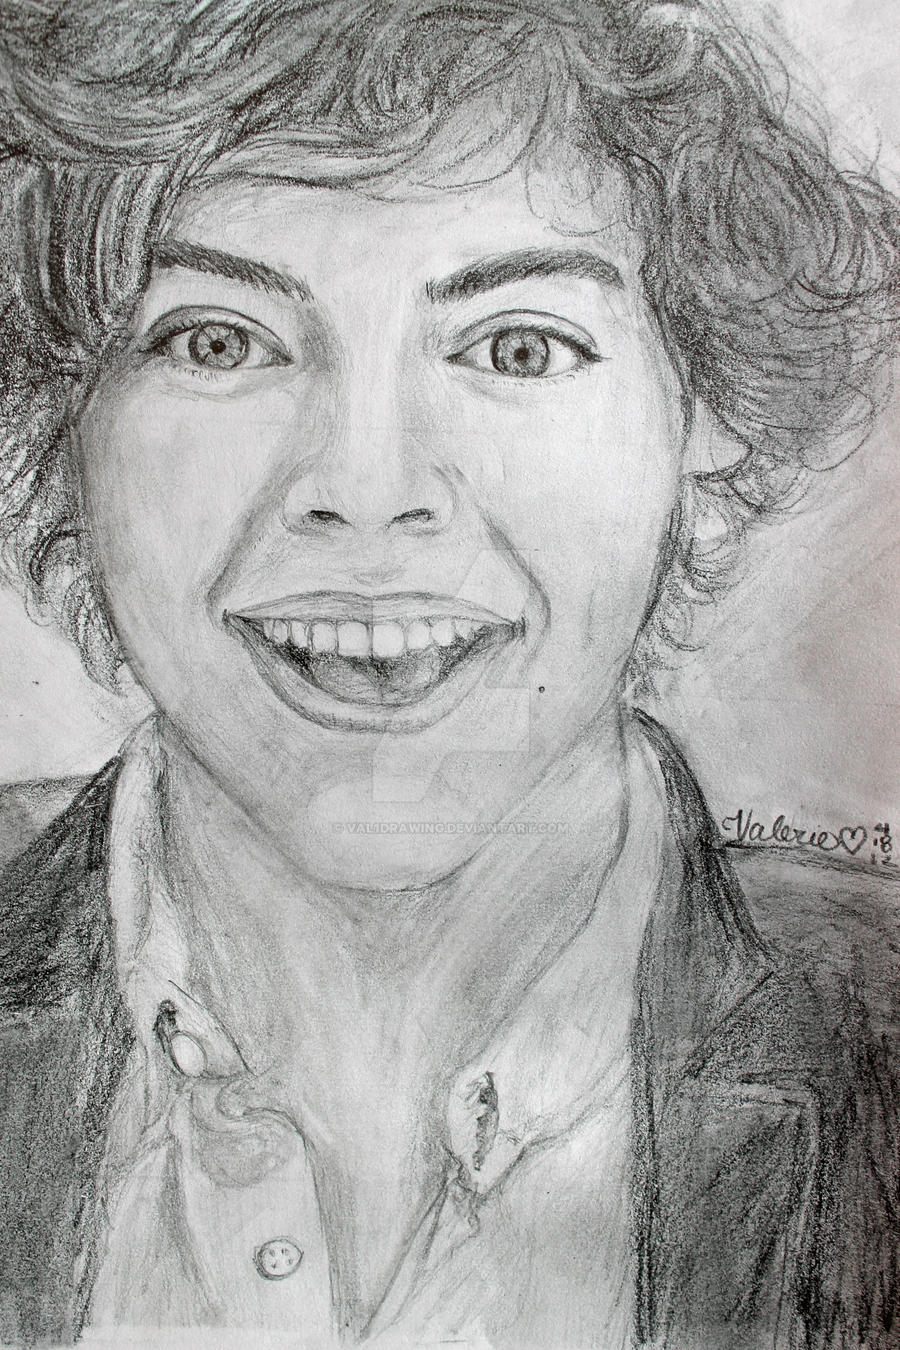 Harry Styles - One Direction (: by val1drawing on DeviantArt